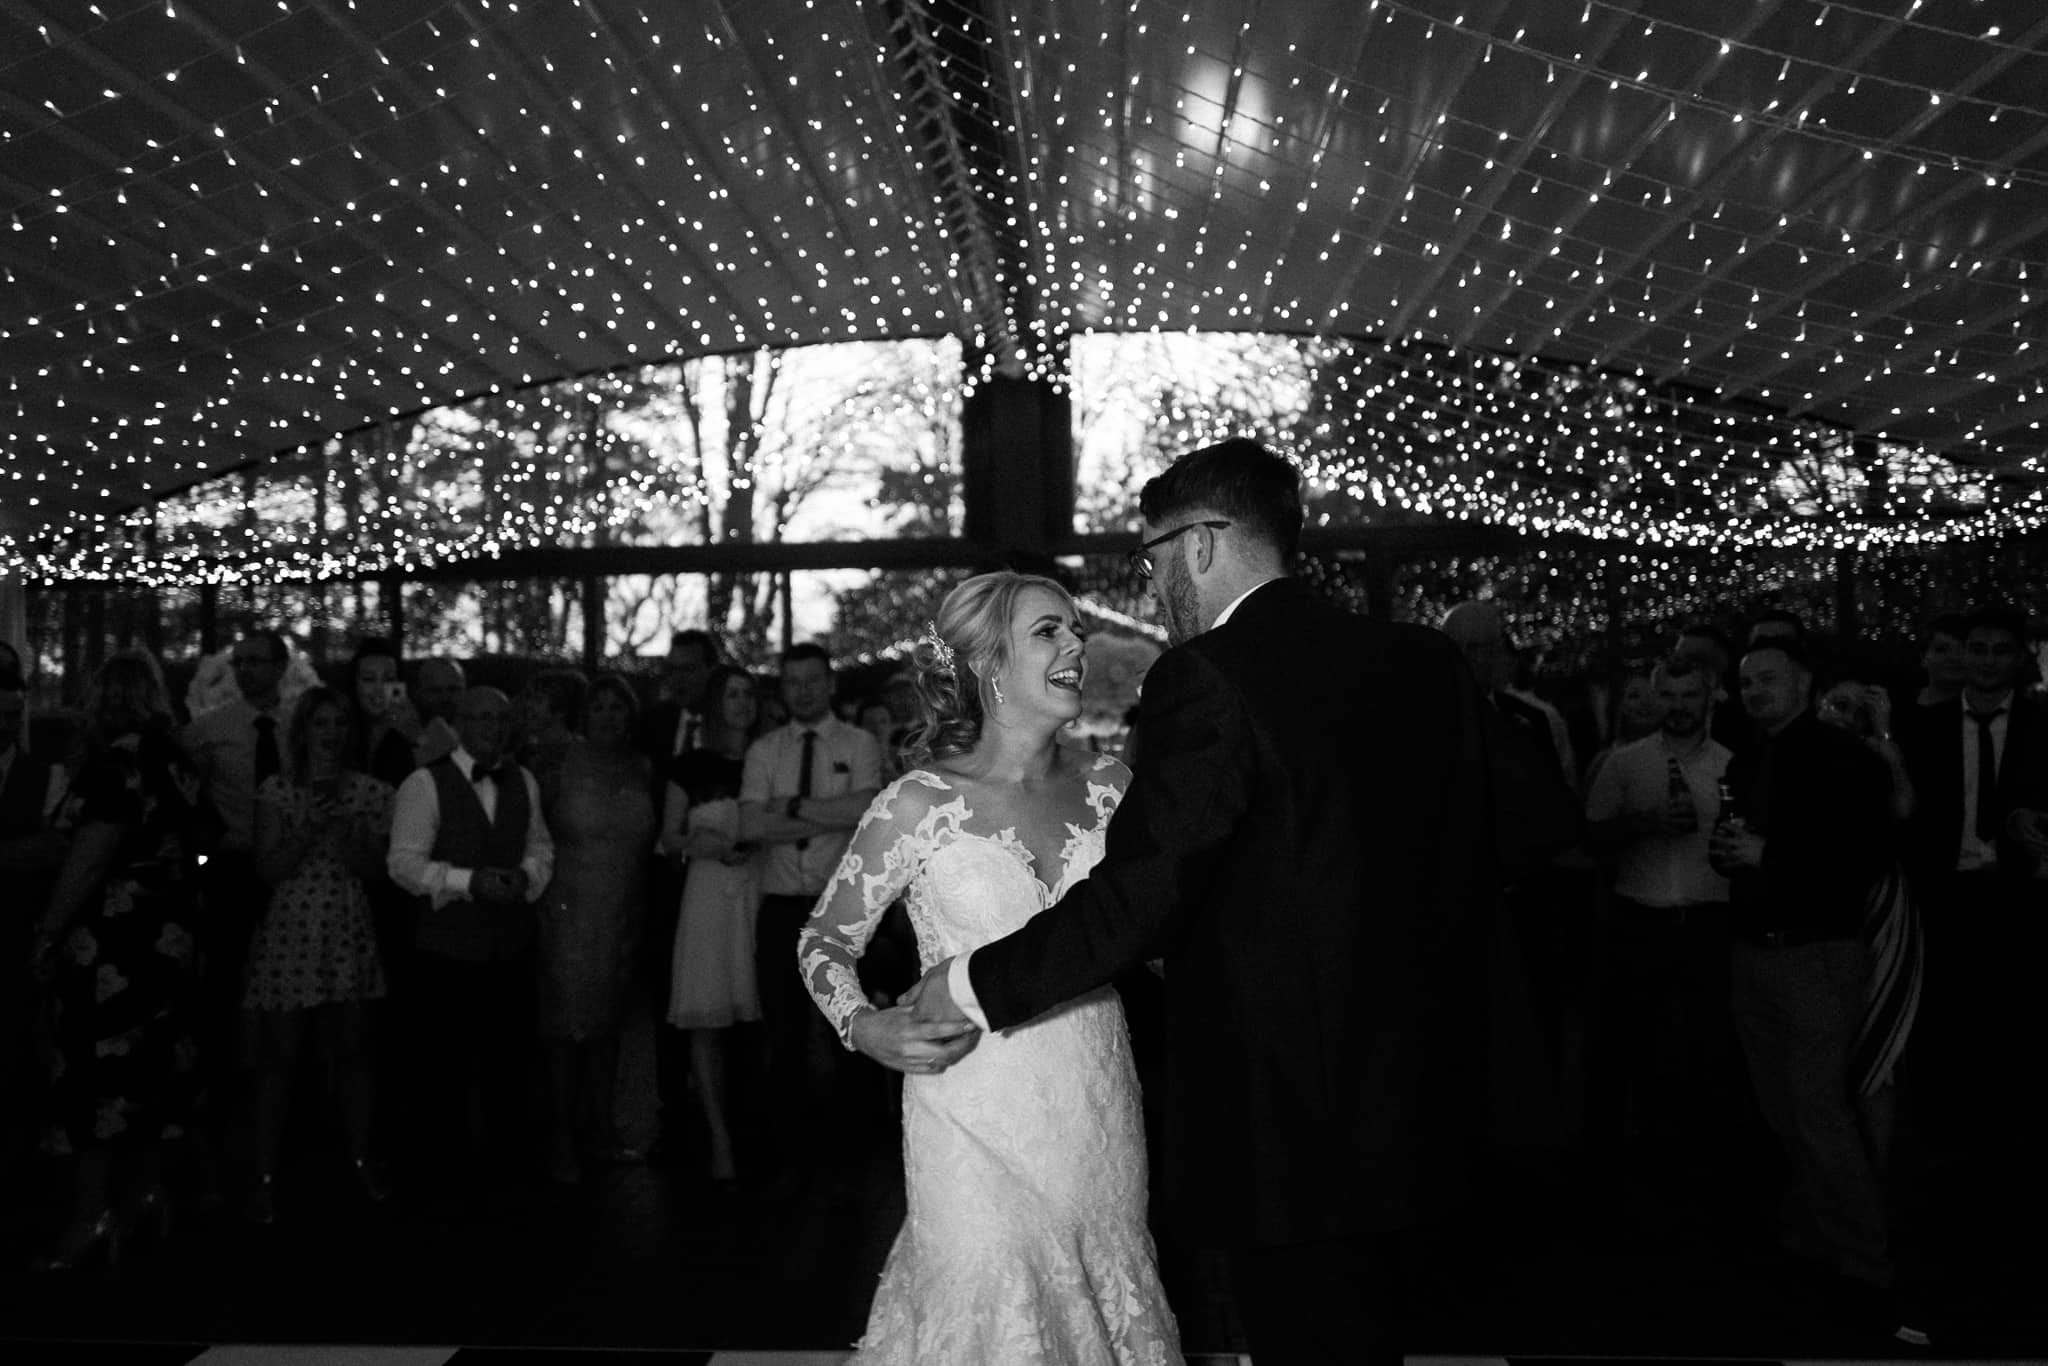 First dance at Delamere Manor Wedding venue